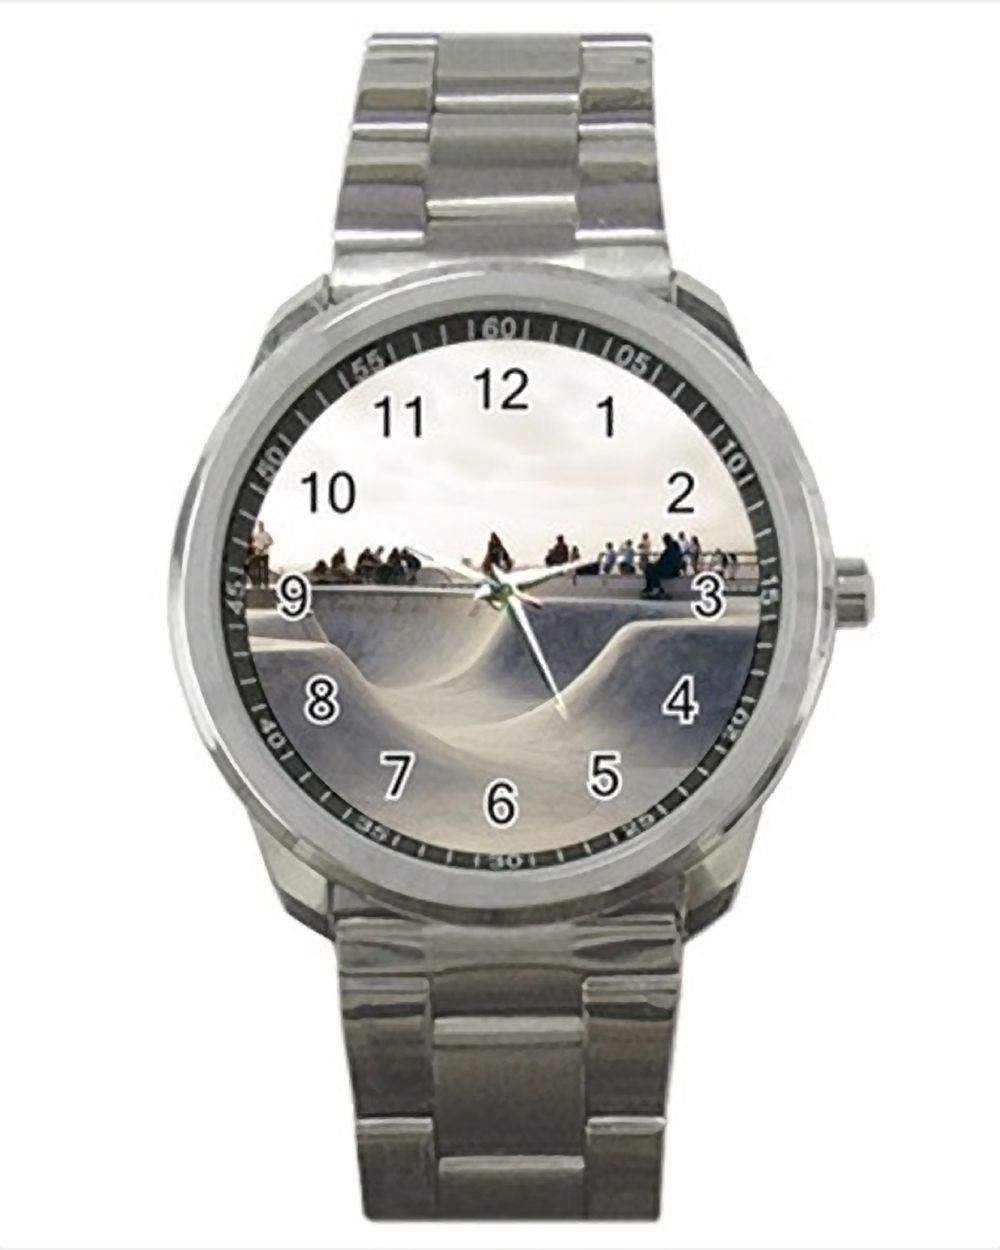 Skateboard Park Stainless Steel Watches